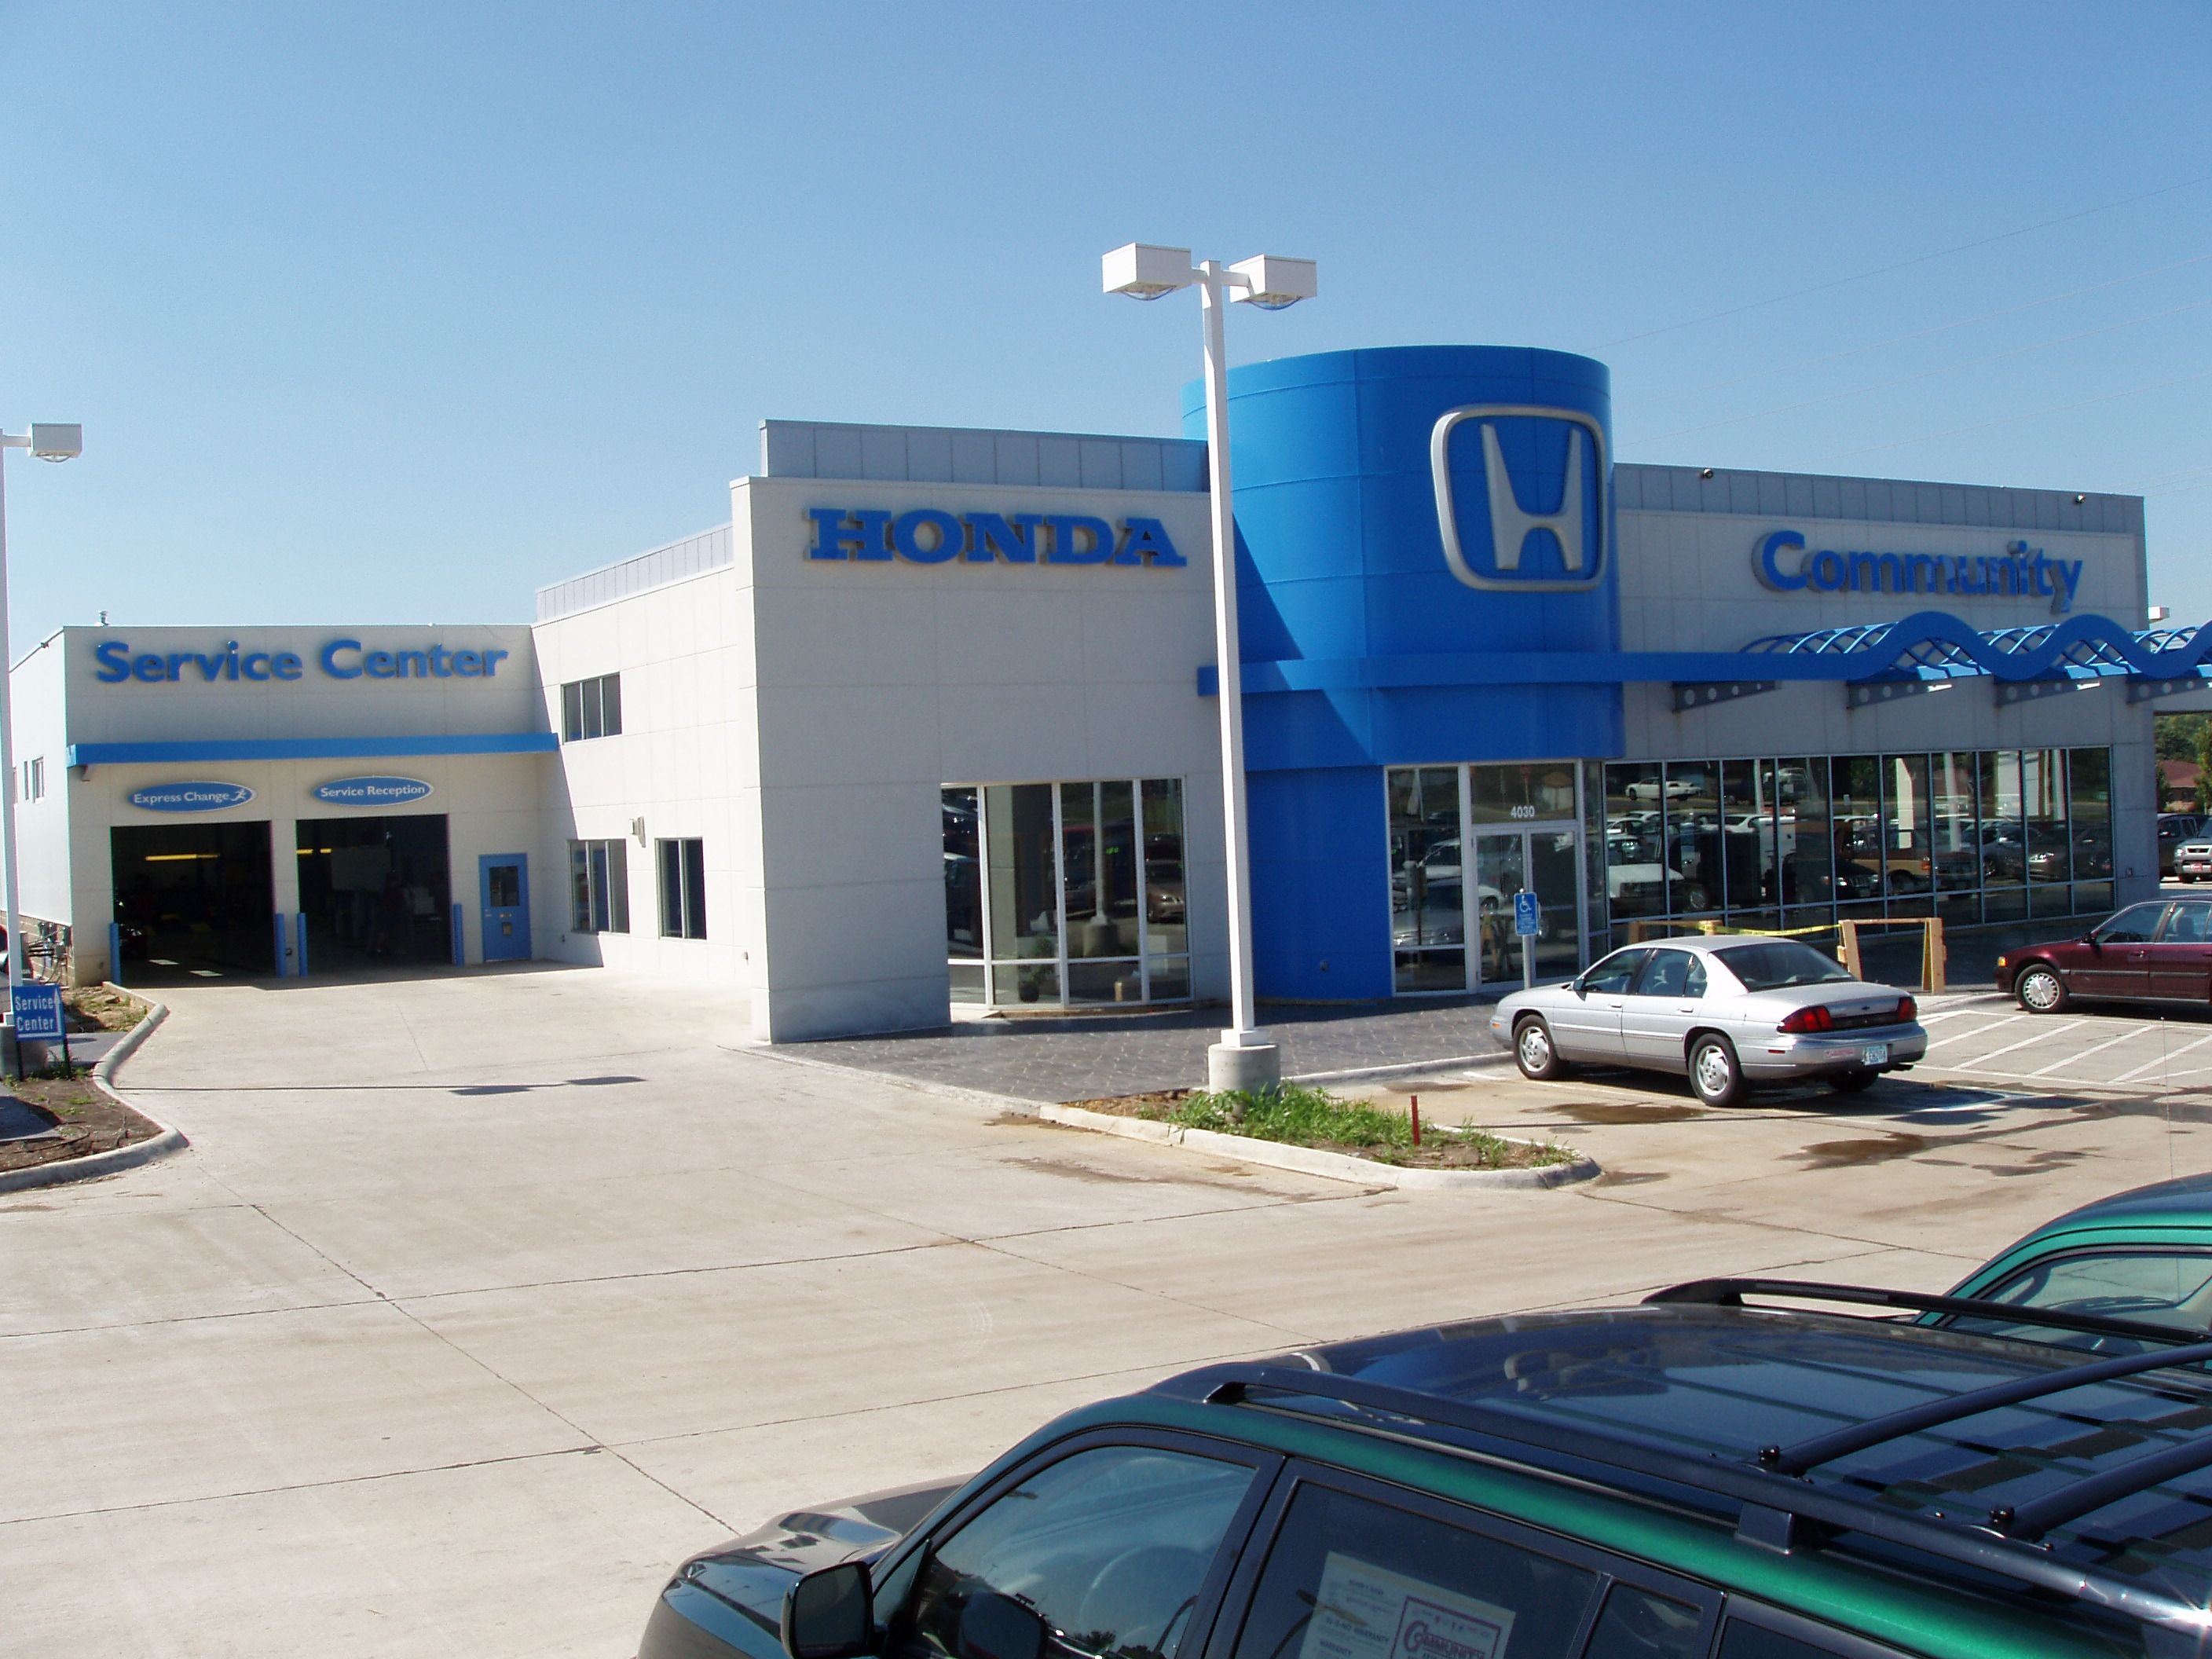 Community Honda (Waterloo)